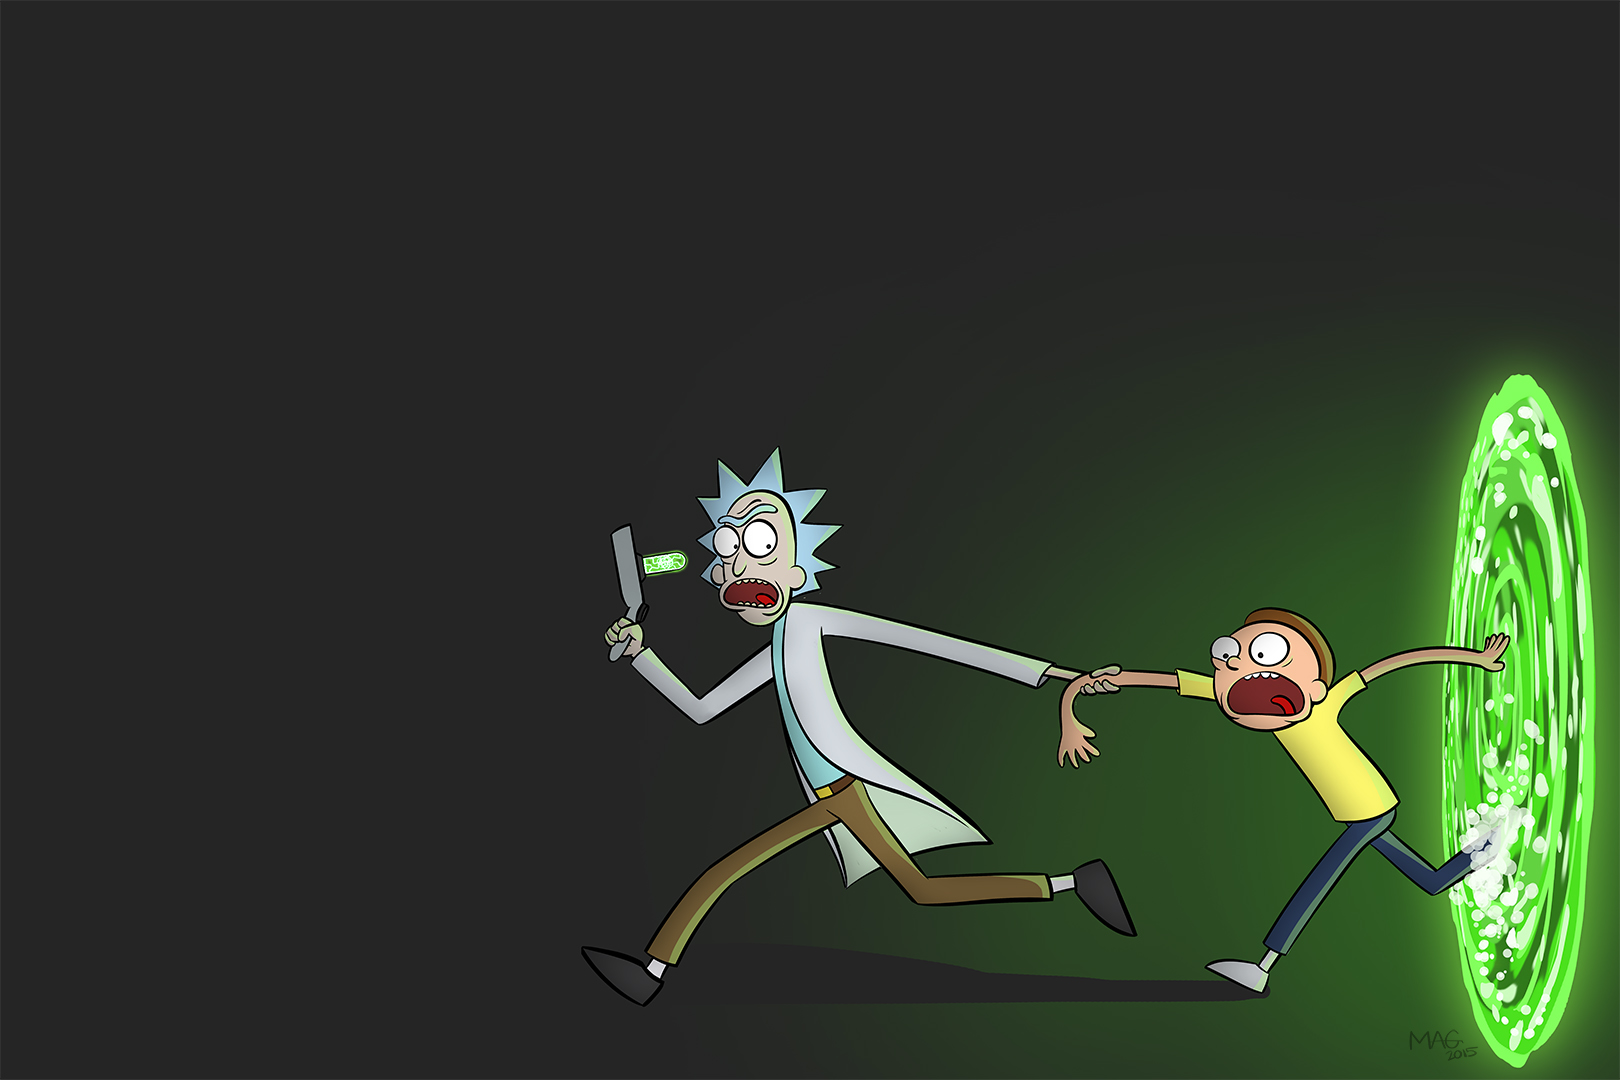 Rick and Morty_01 (Duel Monitor Wallpaper)